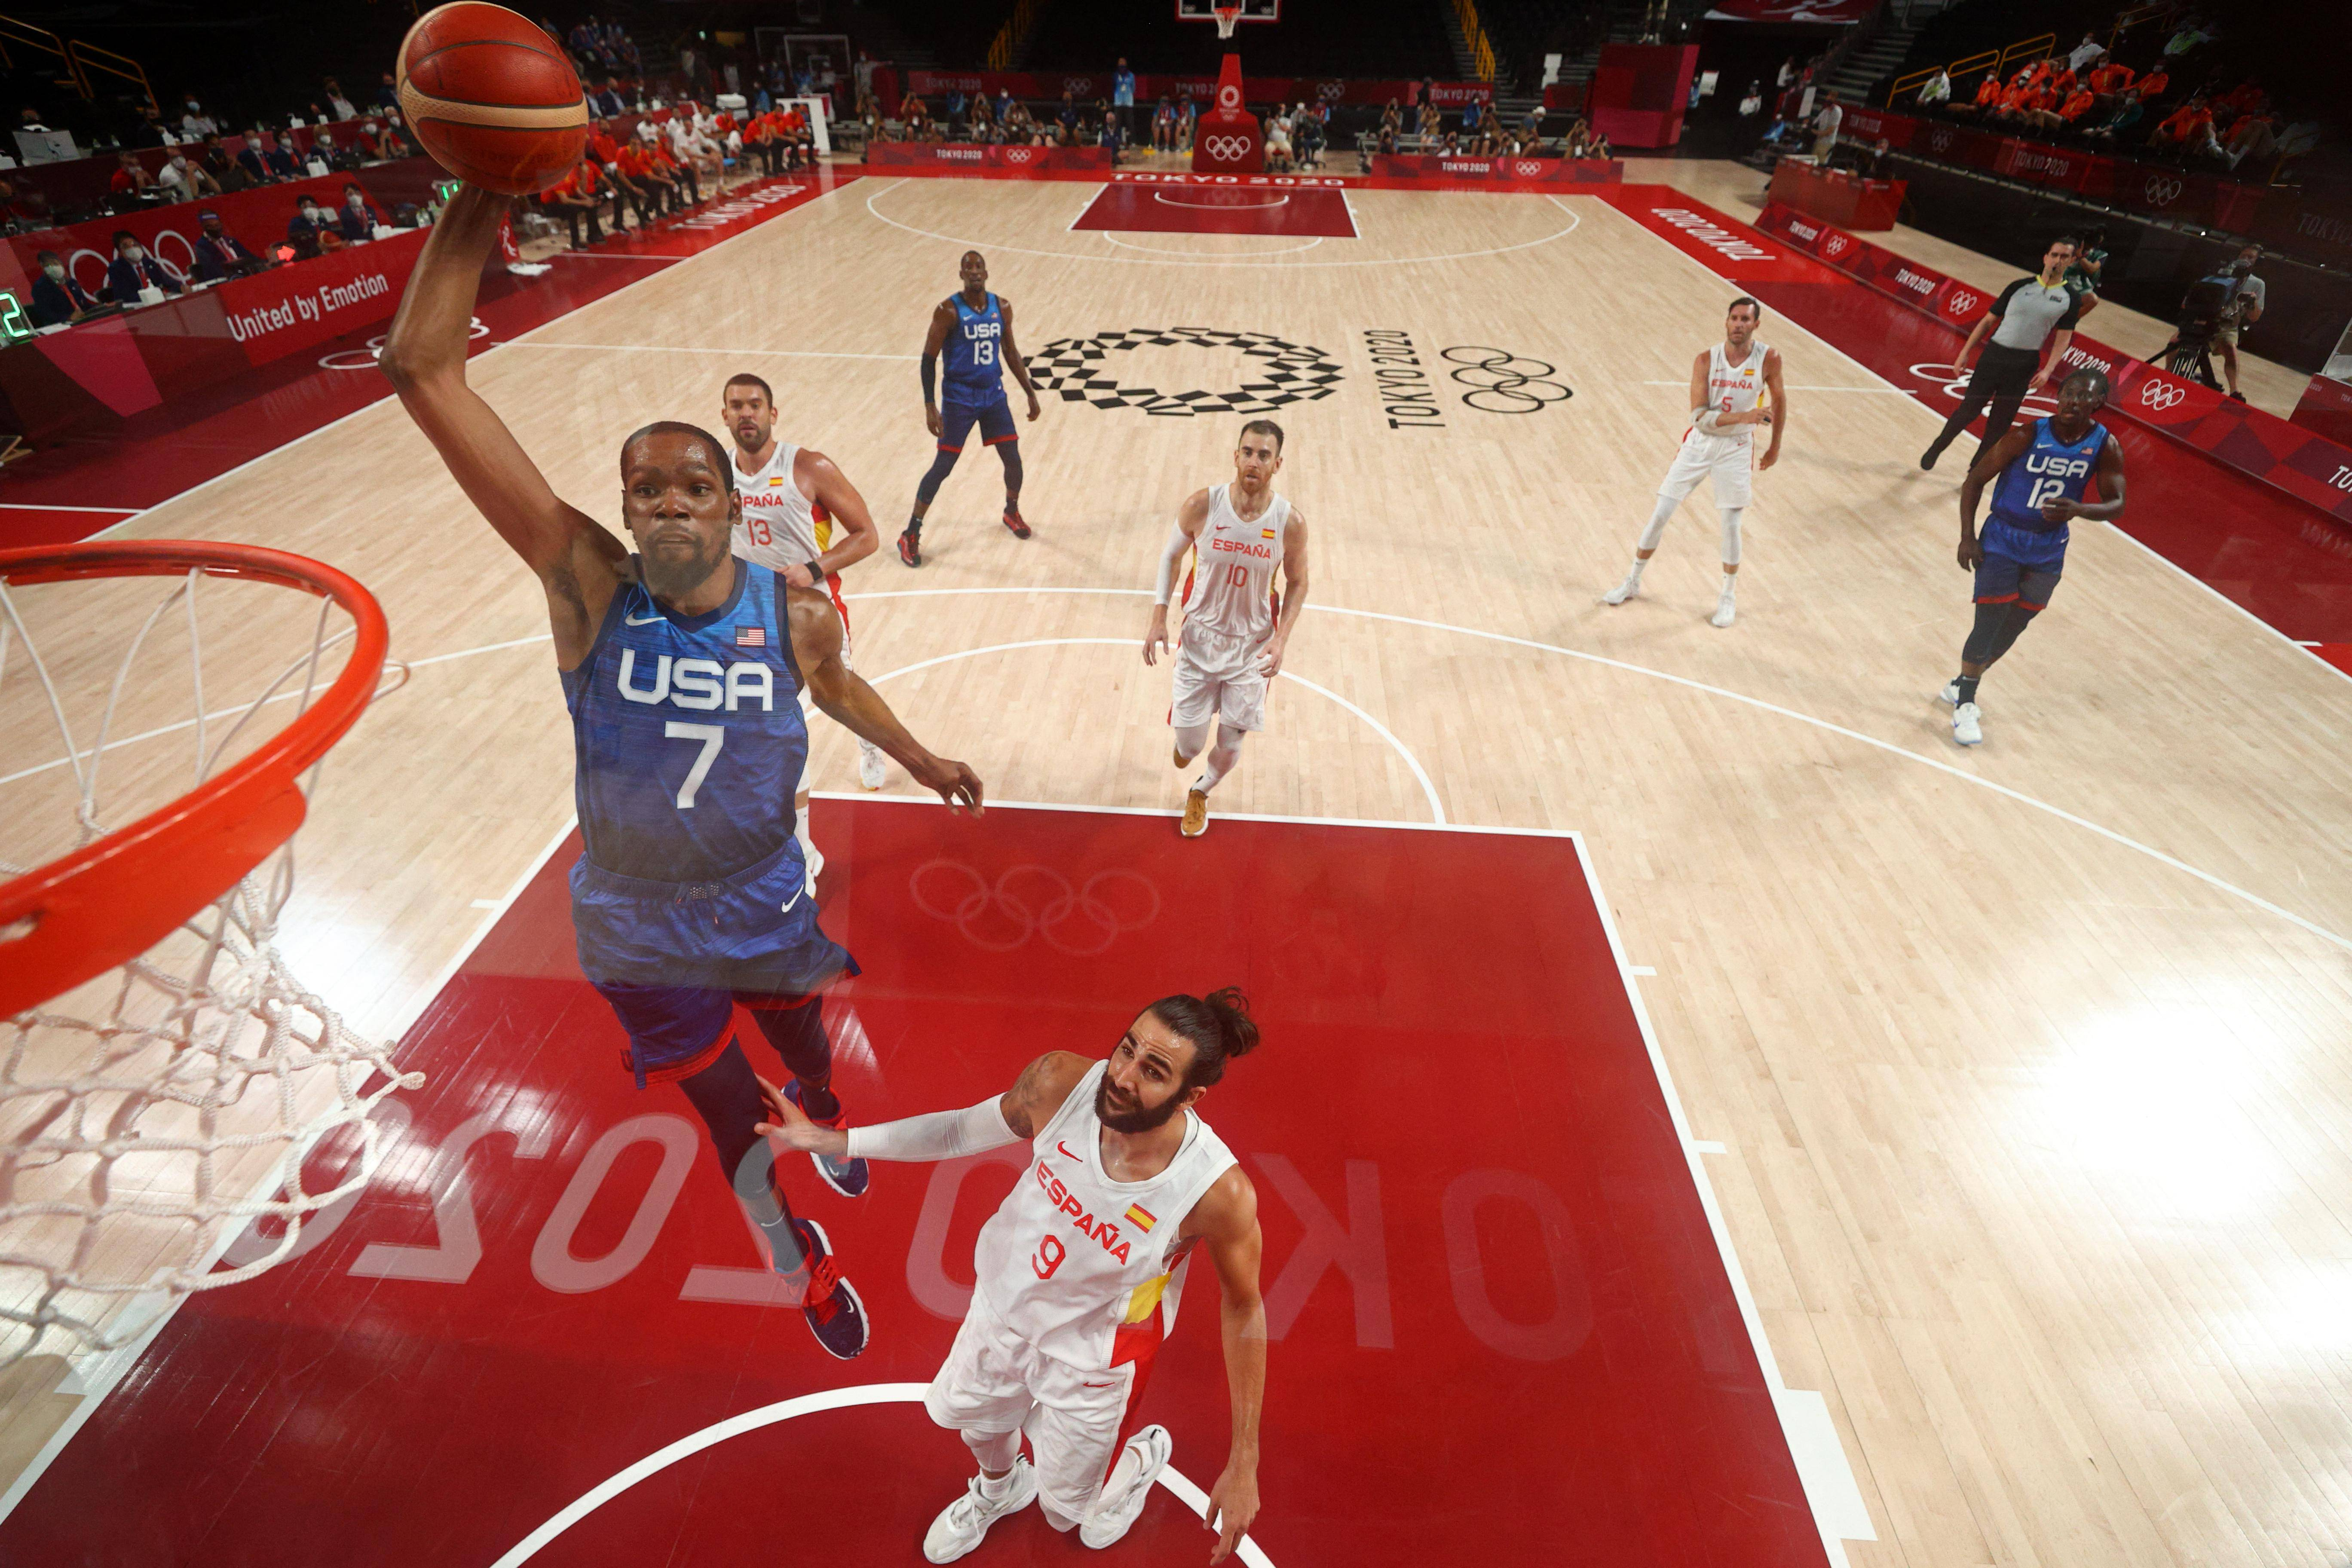 Tokyo Olympics: US superstar Durant chasing Games history